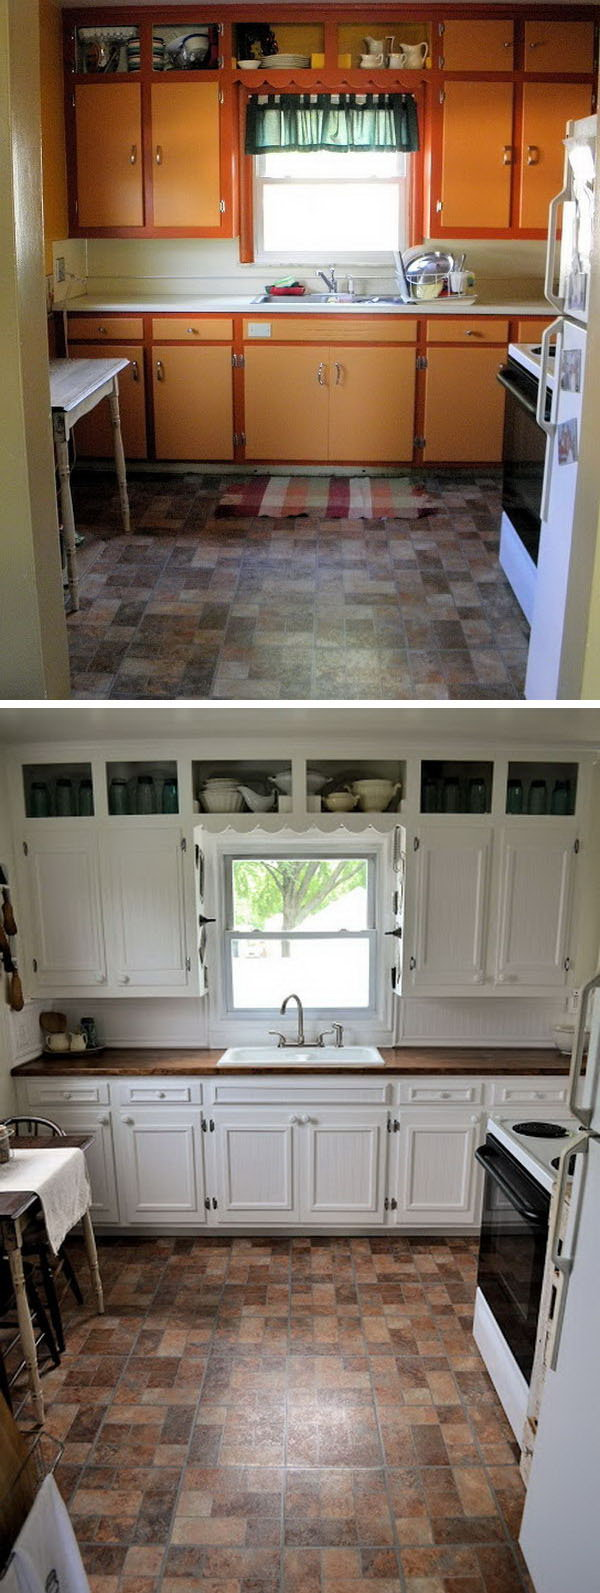 before and after kitchen makeover ideas kitchen makeover ideas Grand Kitchen Reveal